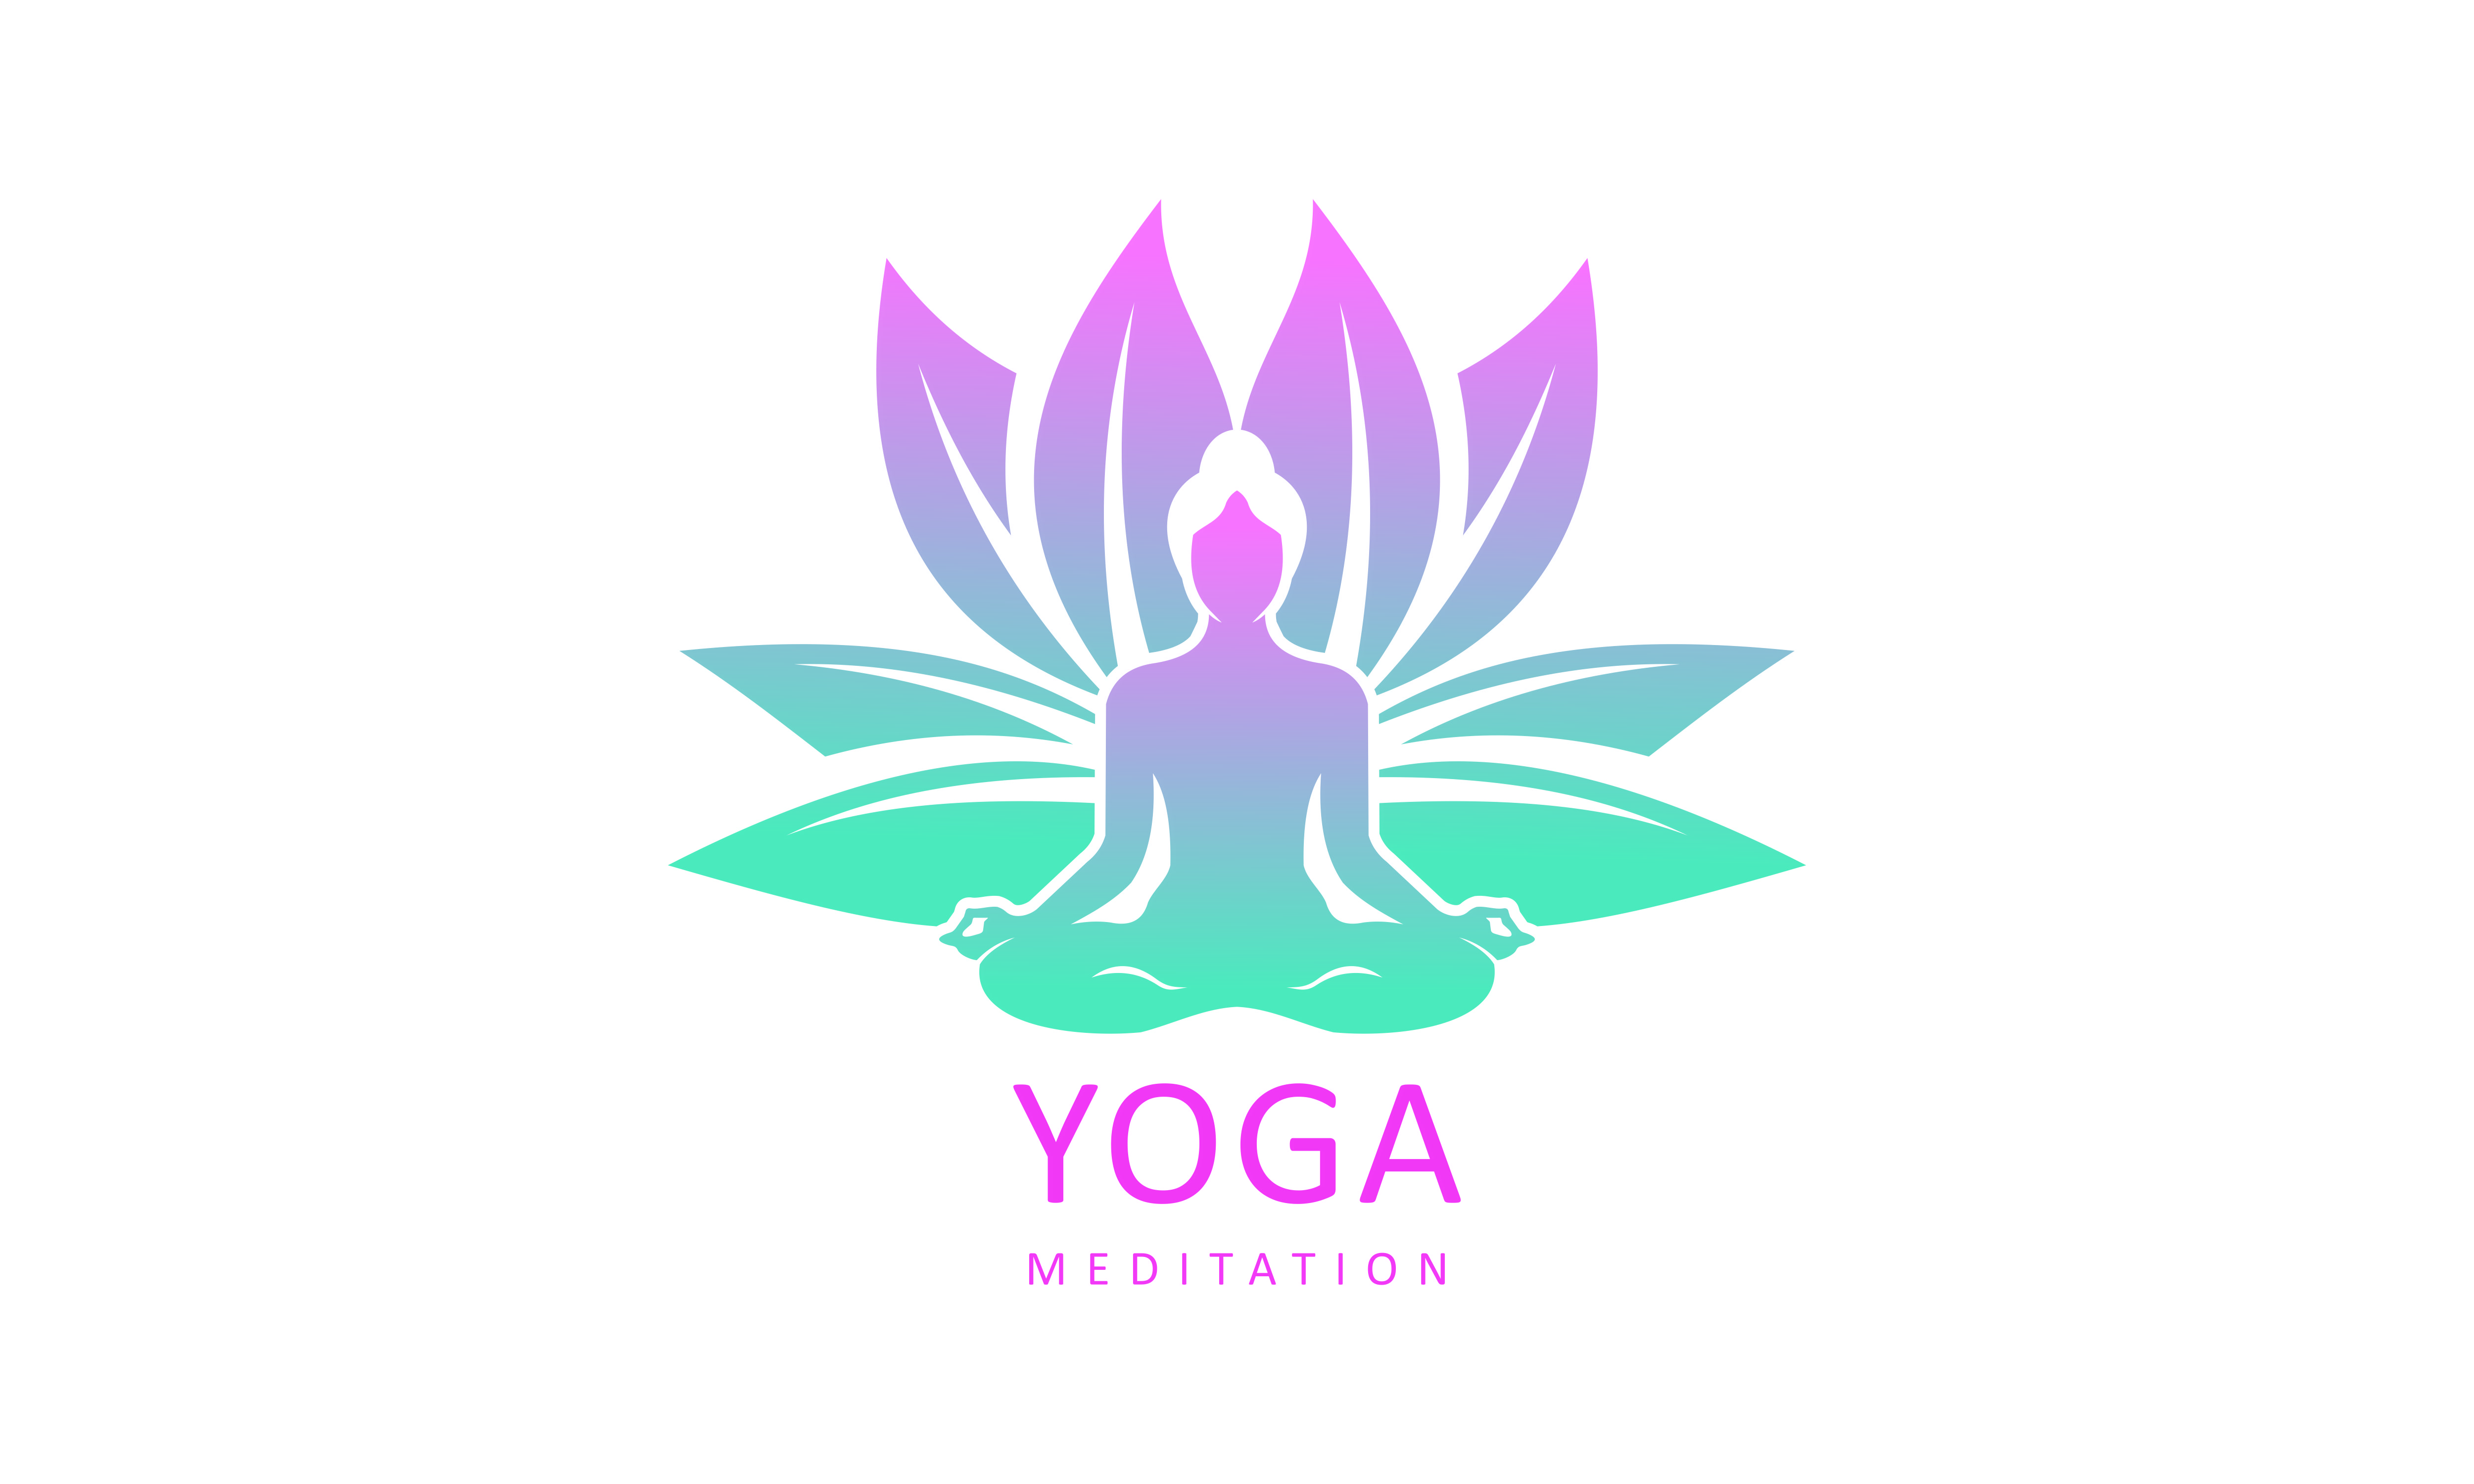 yoga logo design stock human meditation graphic by deemka studio creative fabrica yoga logo design stock human meditation